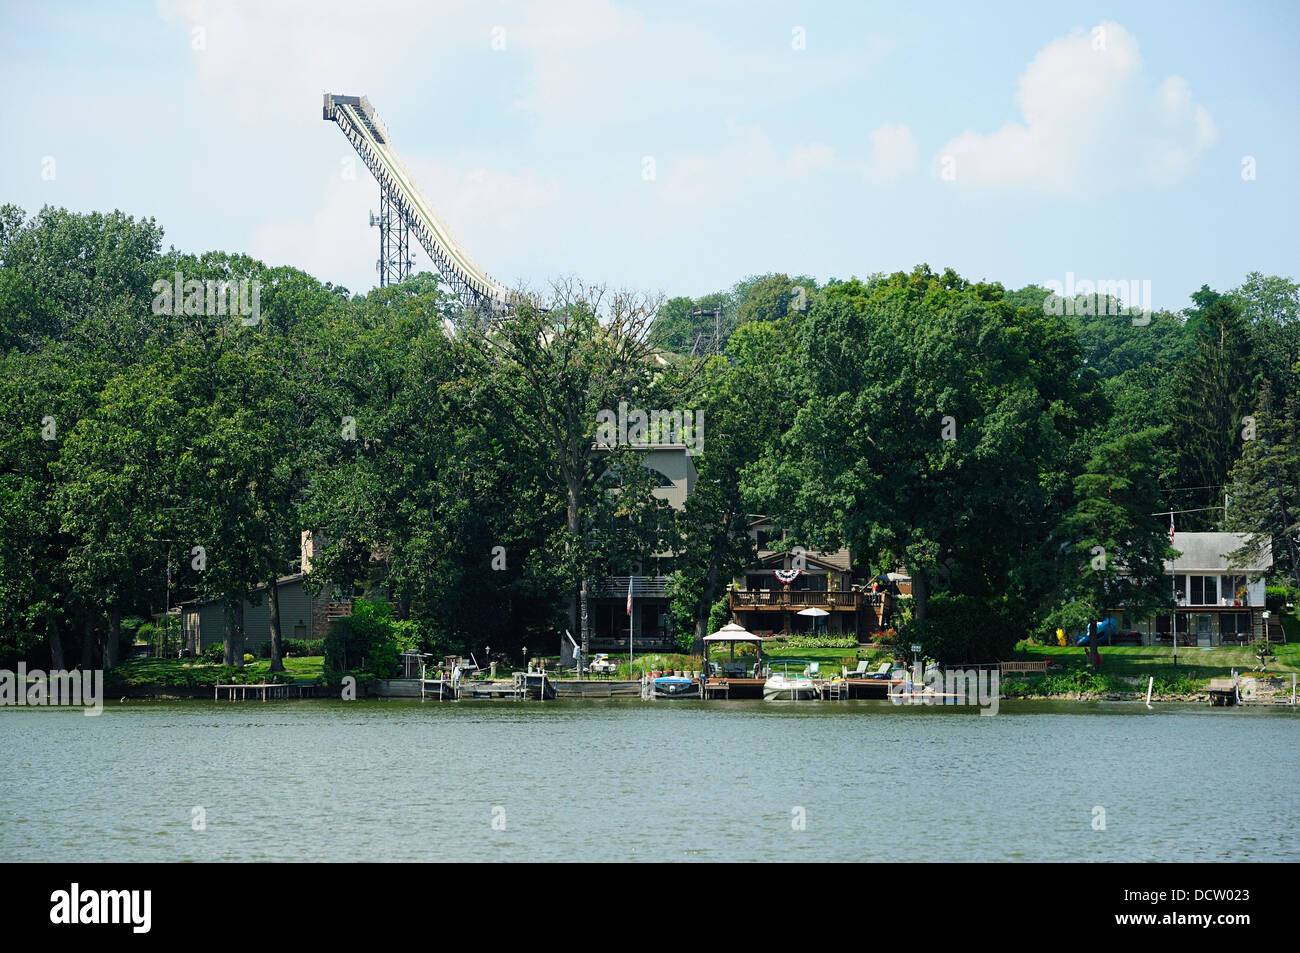 Norge Ski Jump in Fox River Grove, Illinois, USA. Stock Photo